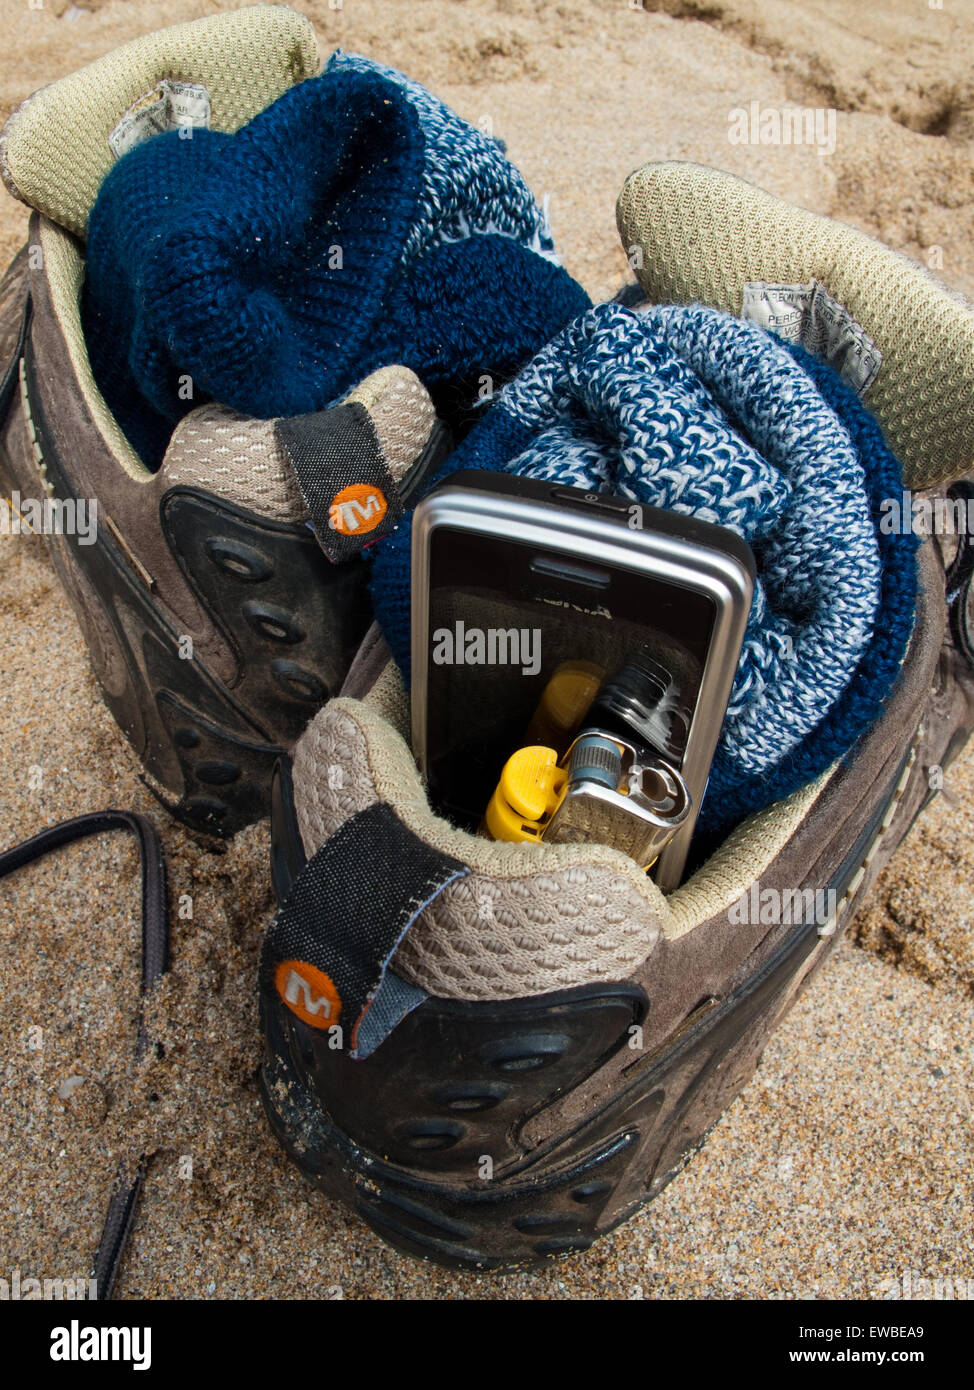 Shoes in the sand at beach, with mobile phone and cigarette lighter - Stock Image